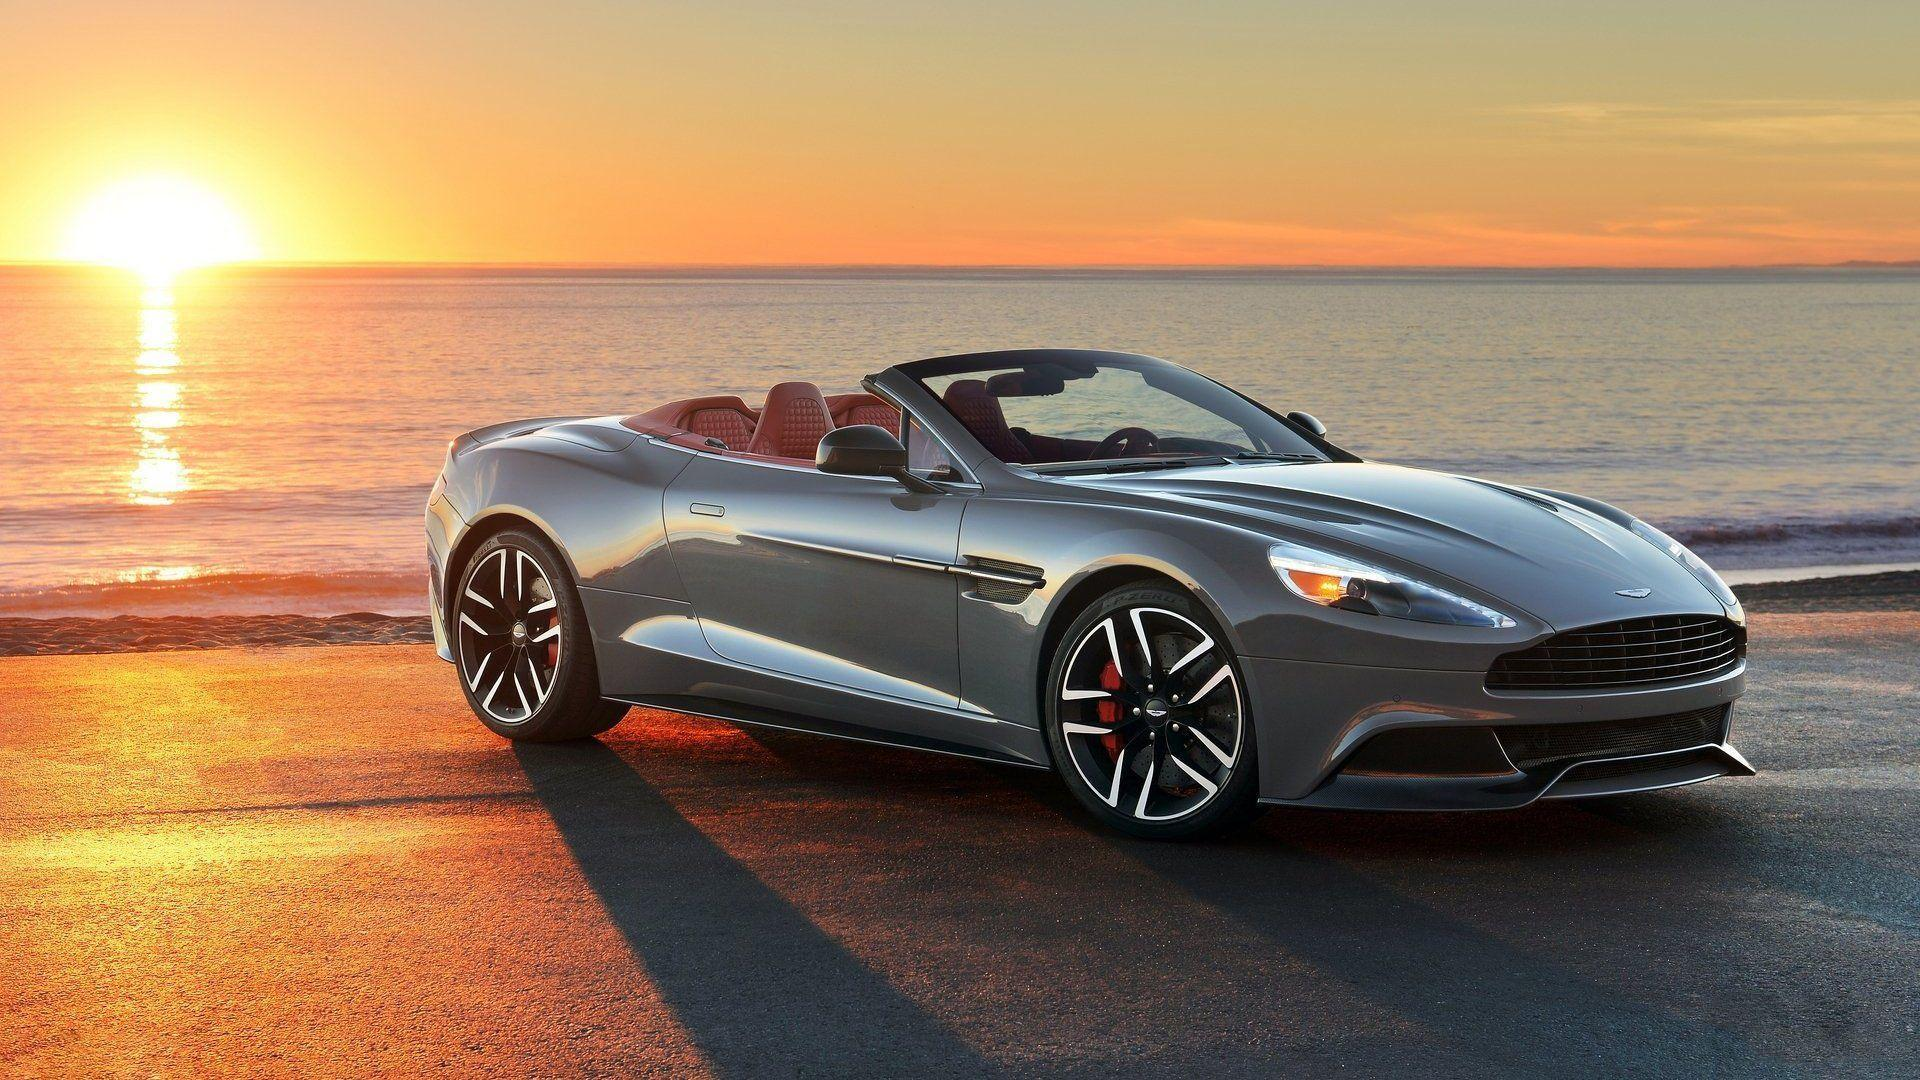 Aston Martin Vanquish Volante Sunset Wallpapers